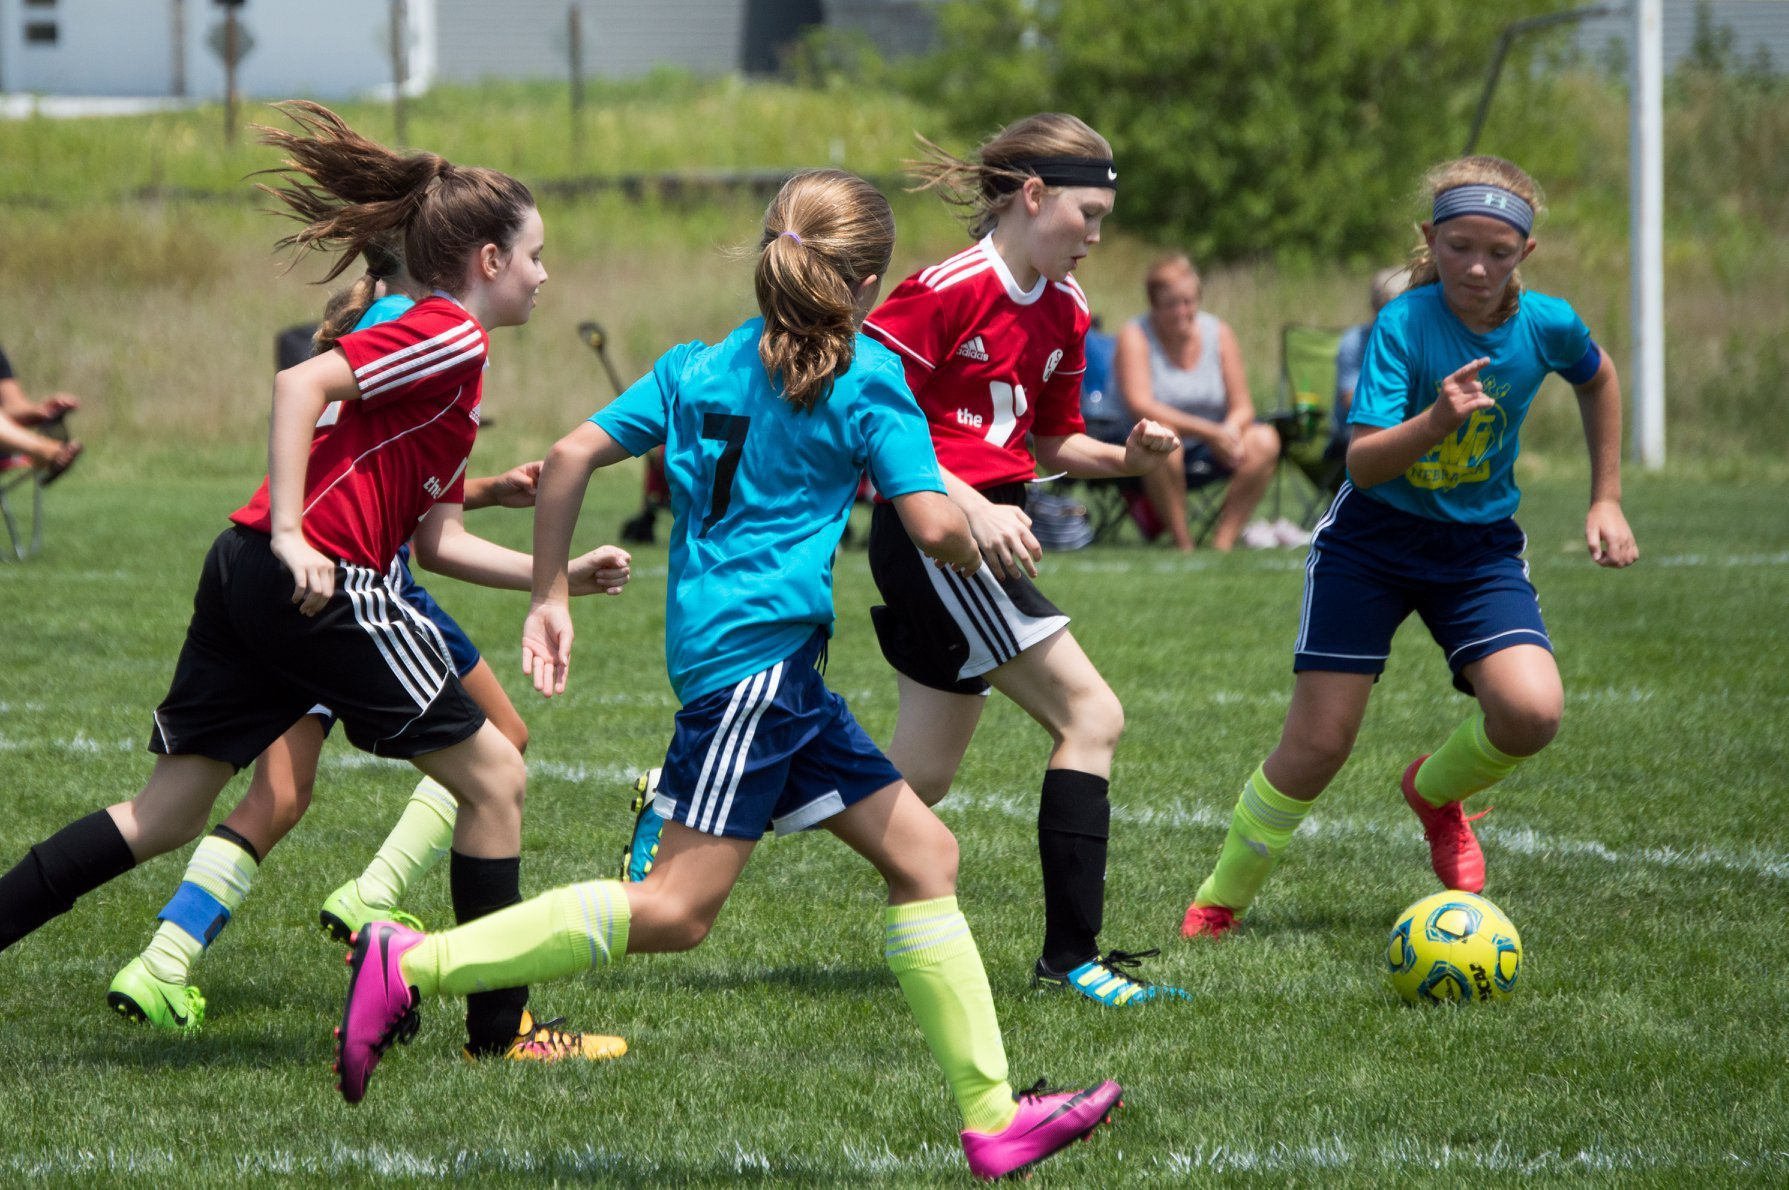 Cornhusker State Games registration wrapping up for most sports